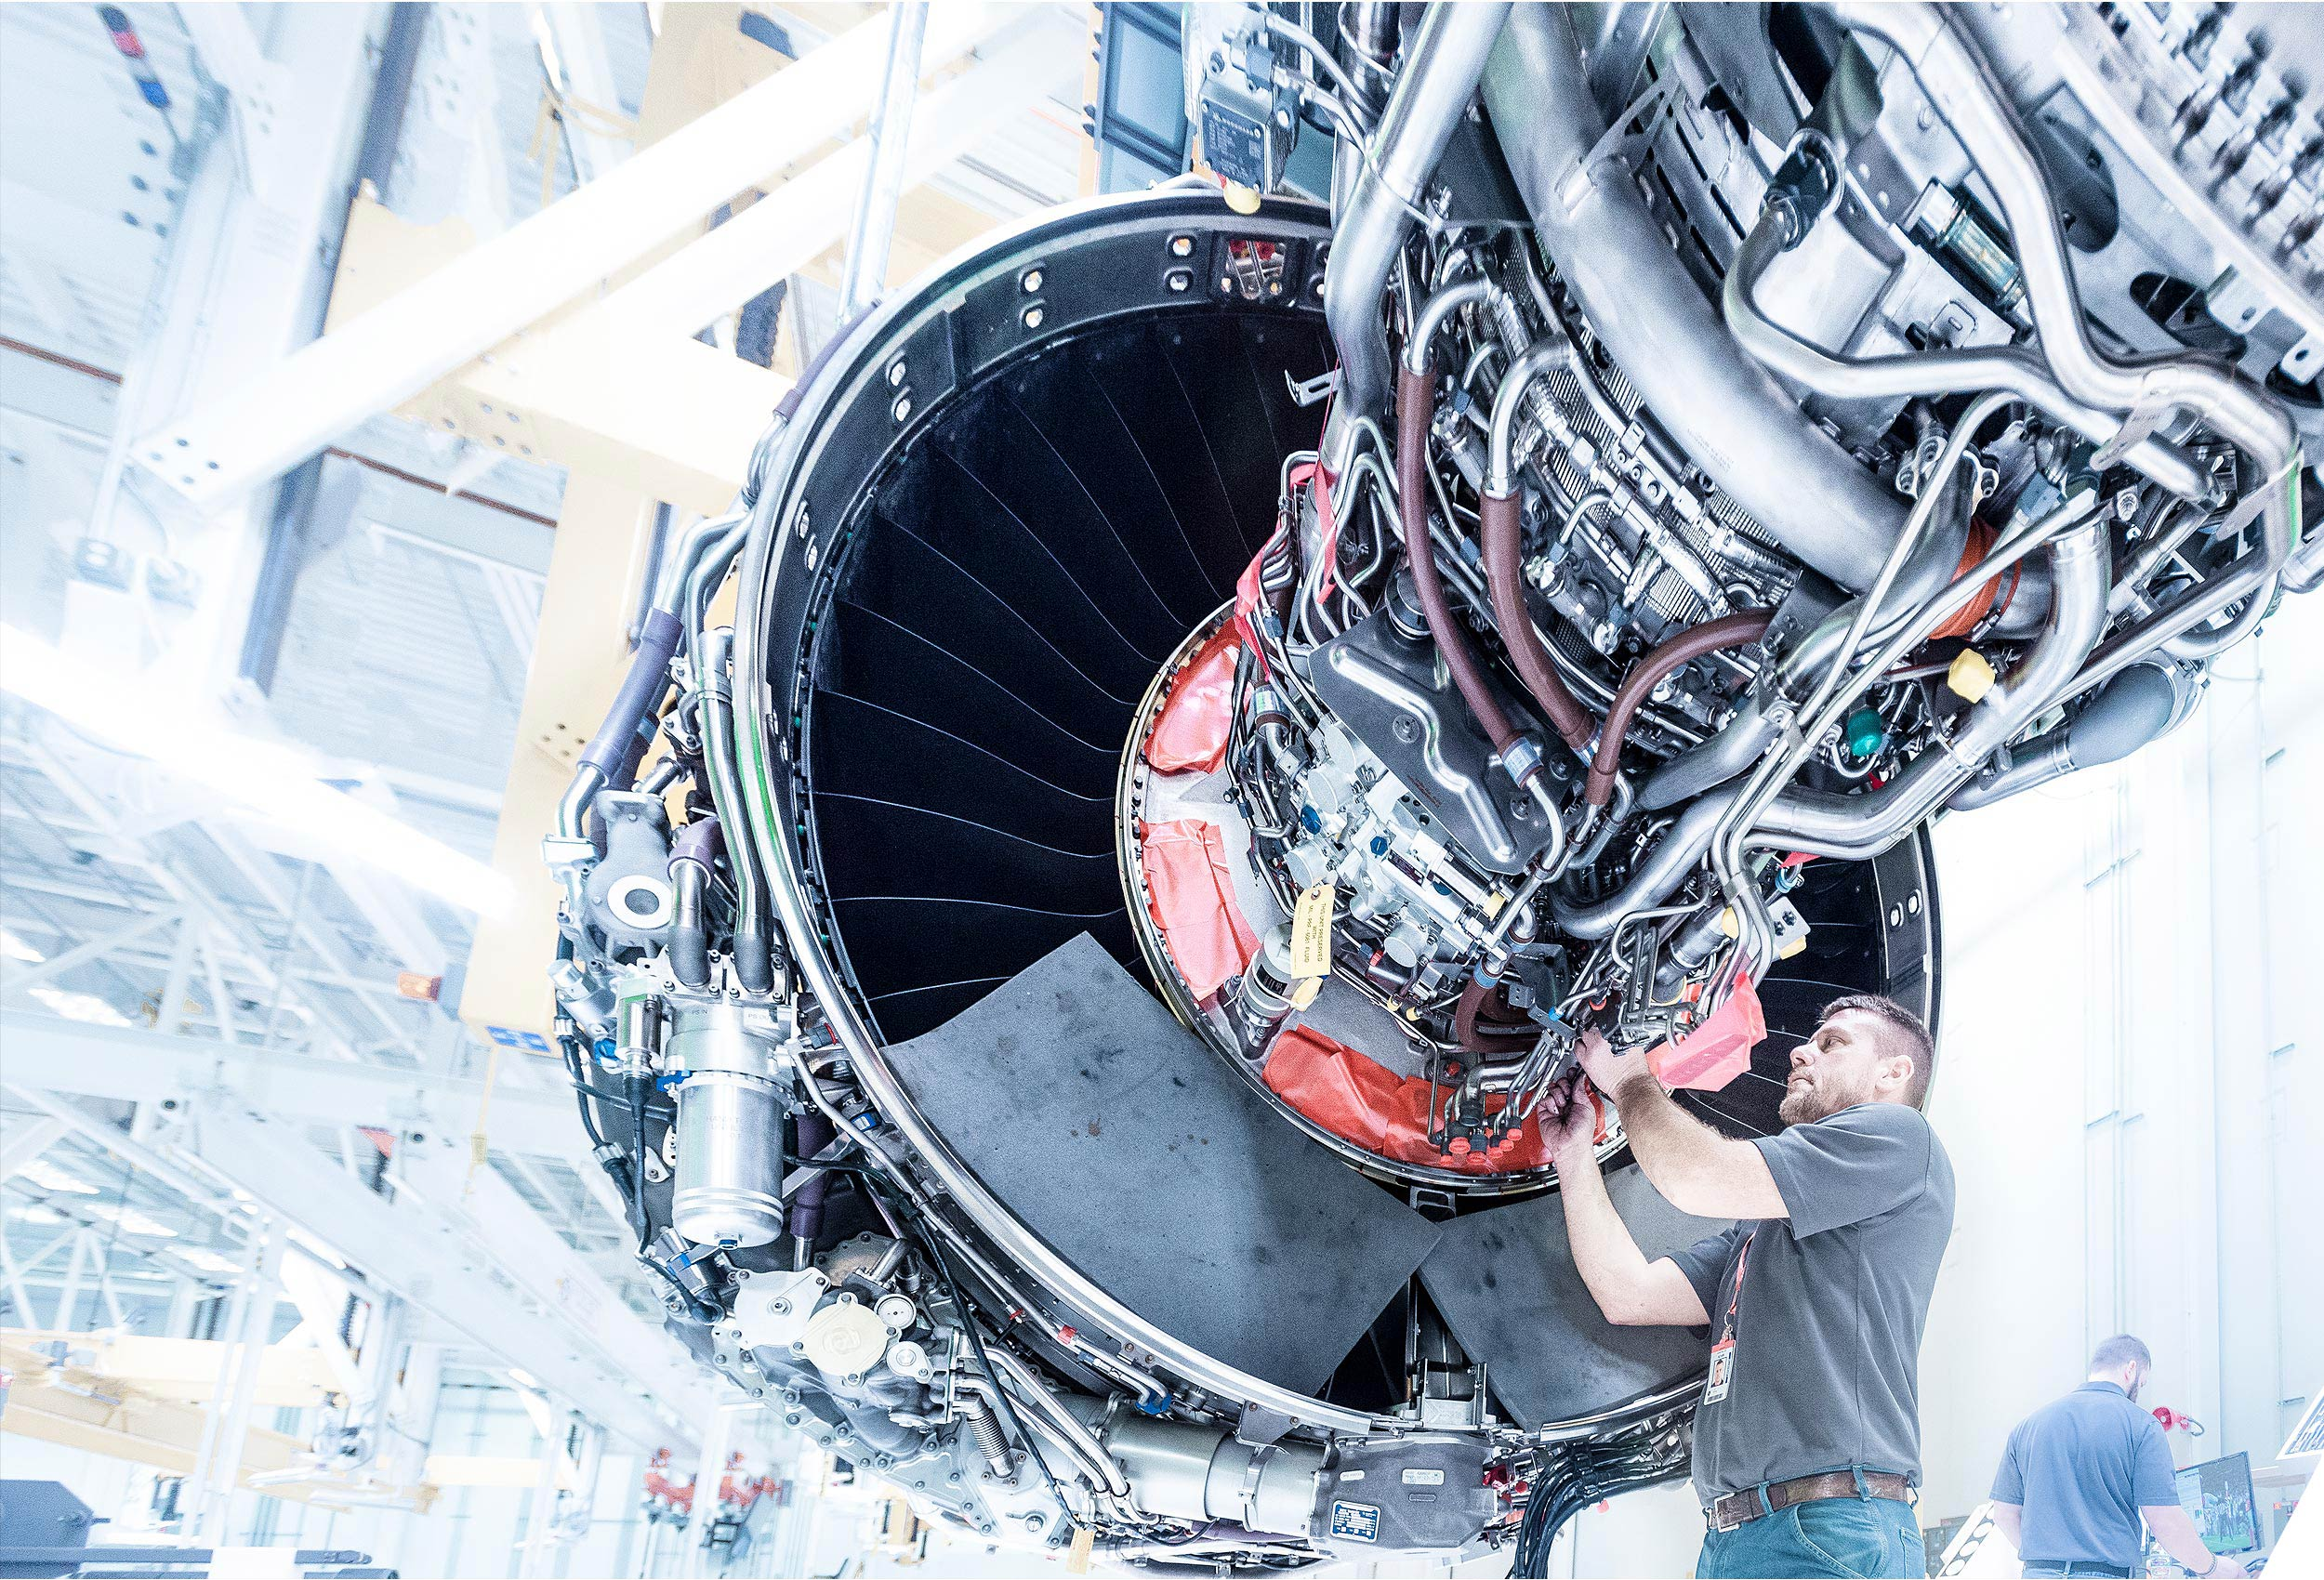 Technicians building the GE/Safran LEAP engine by corporate industrial photographer Kristopher Grunert.